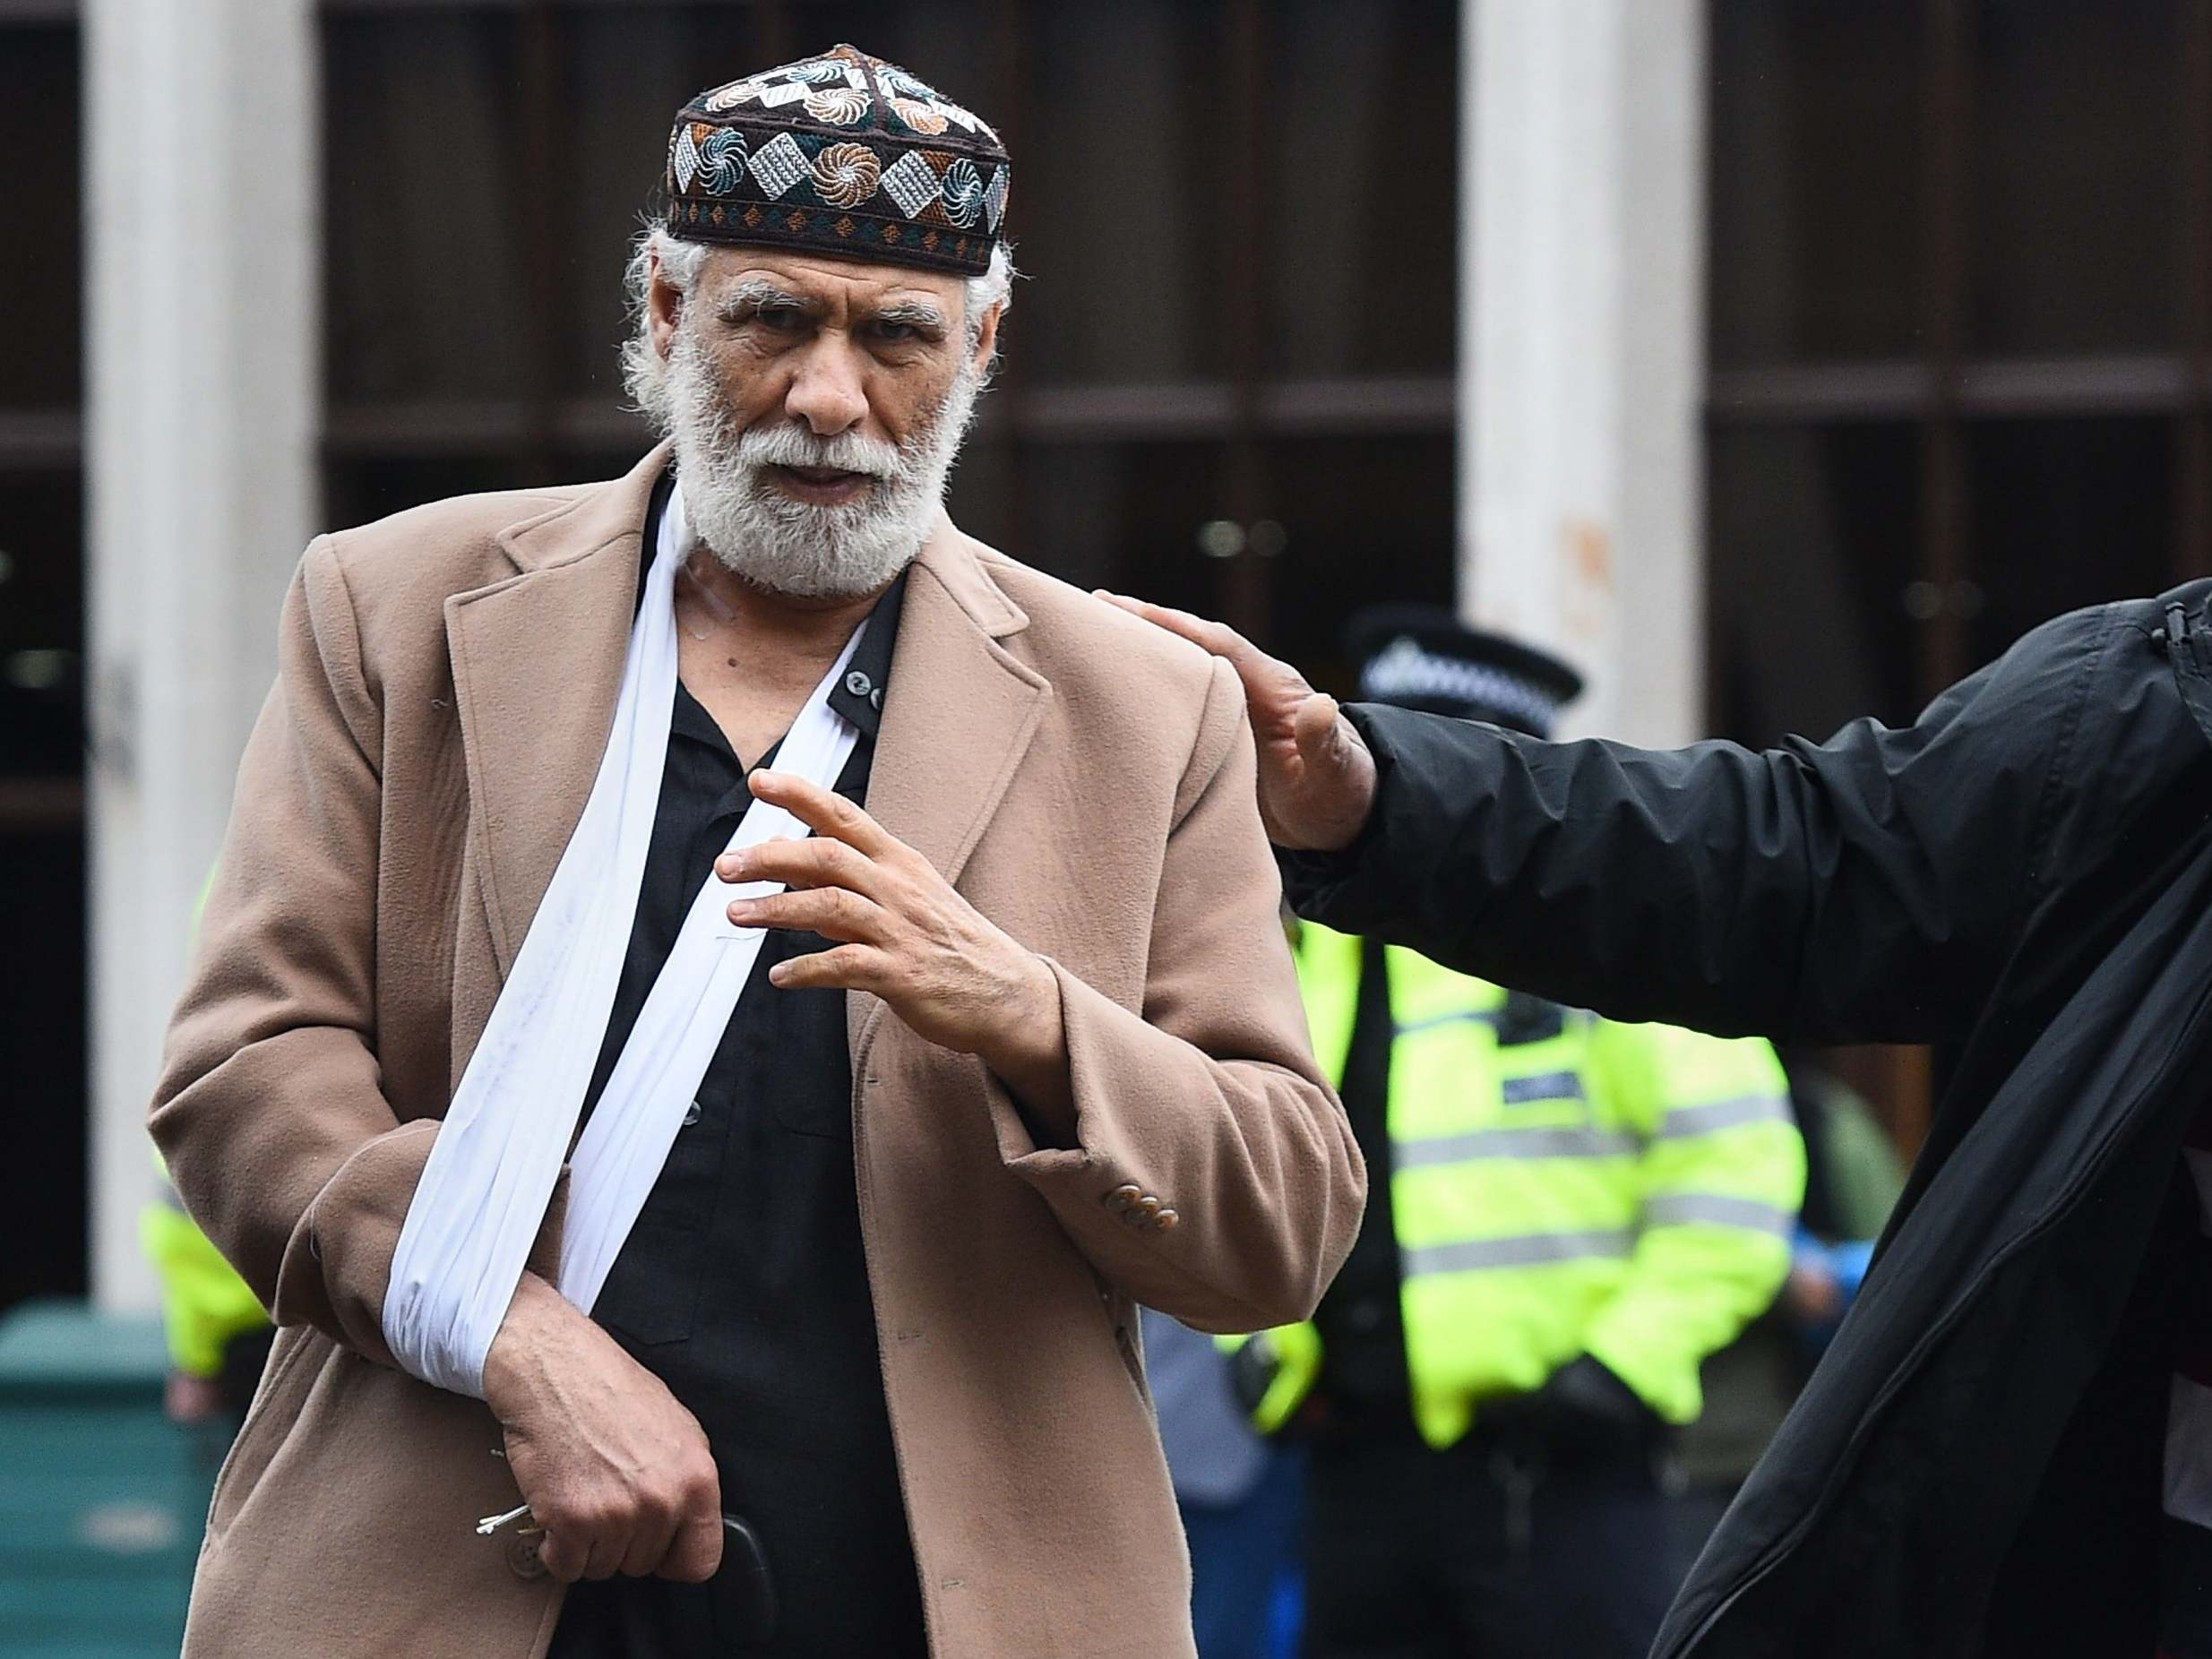 Muslim prayer leader says he forgives attacker who stabbed him in neck